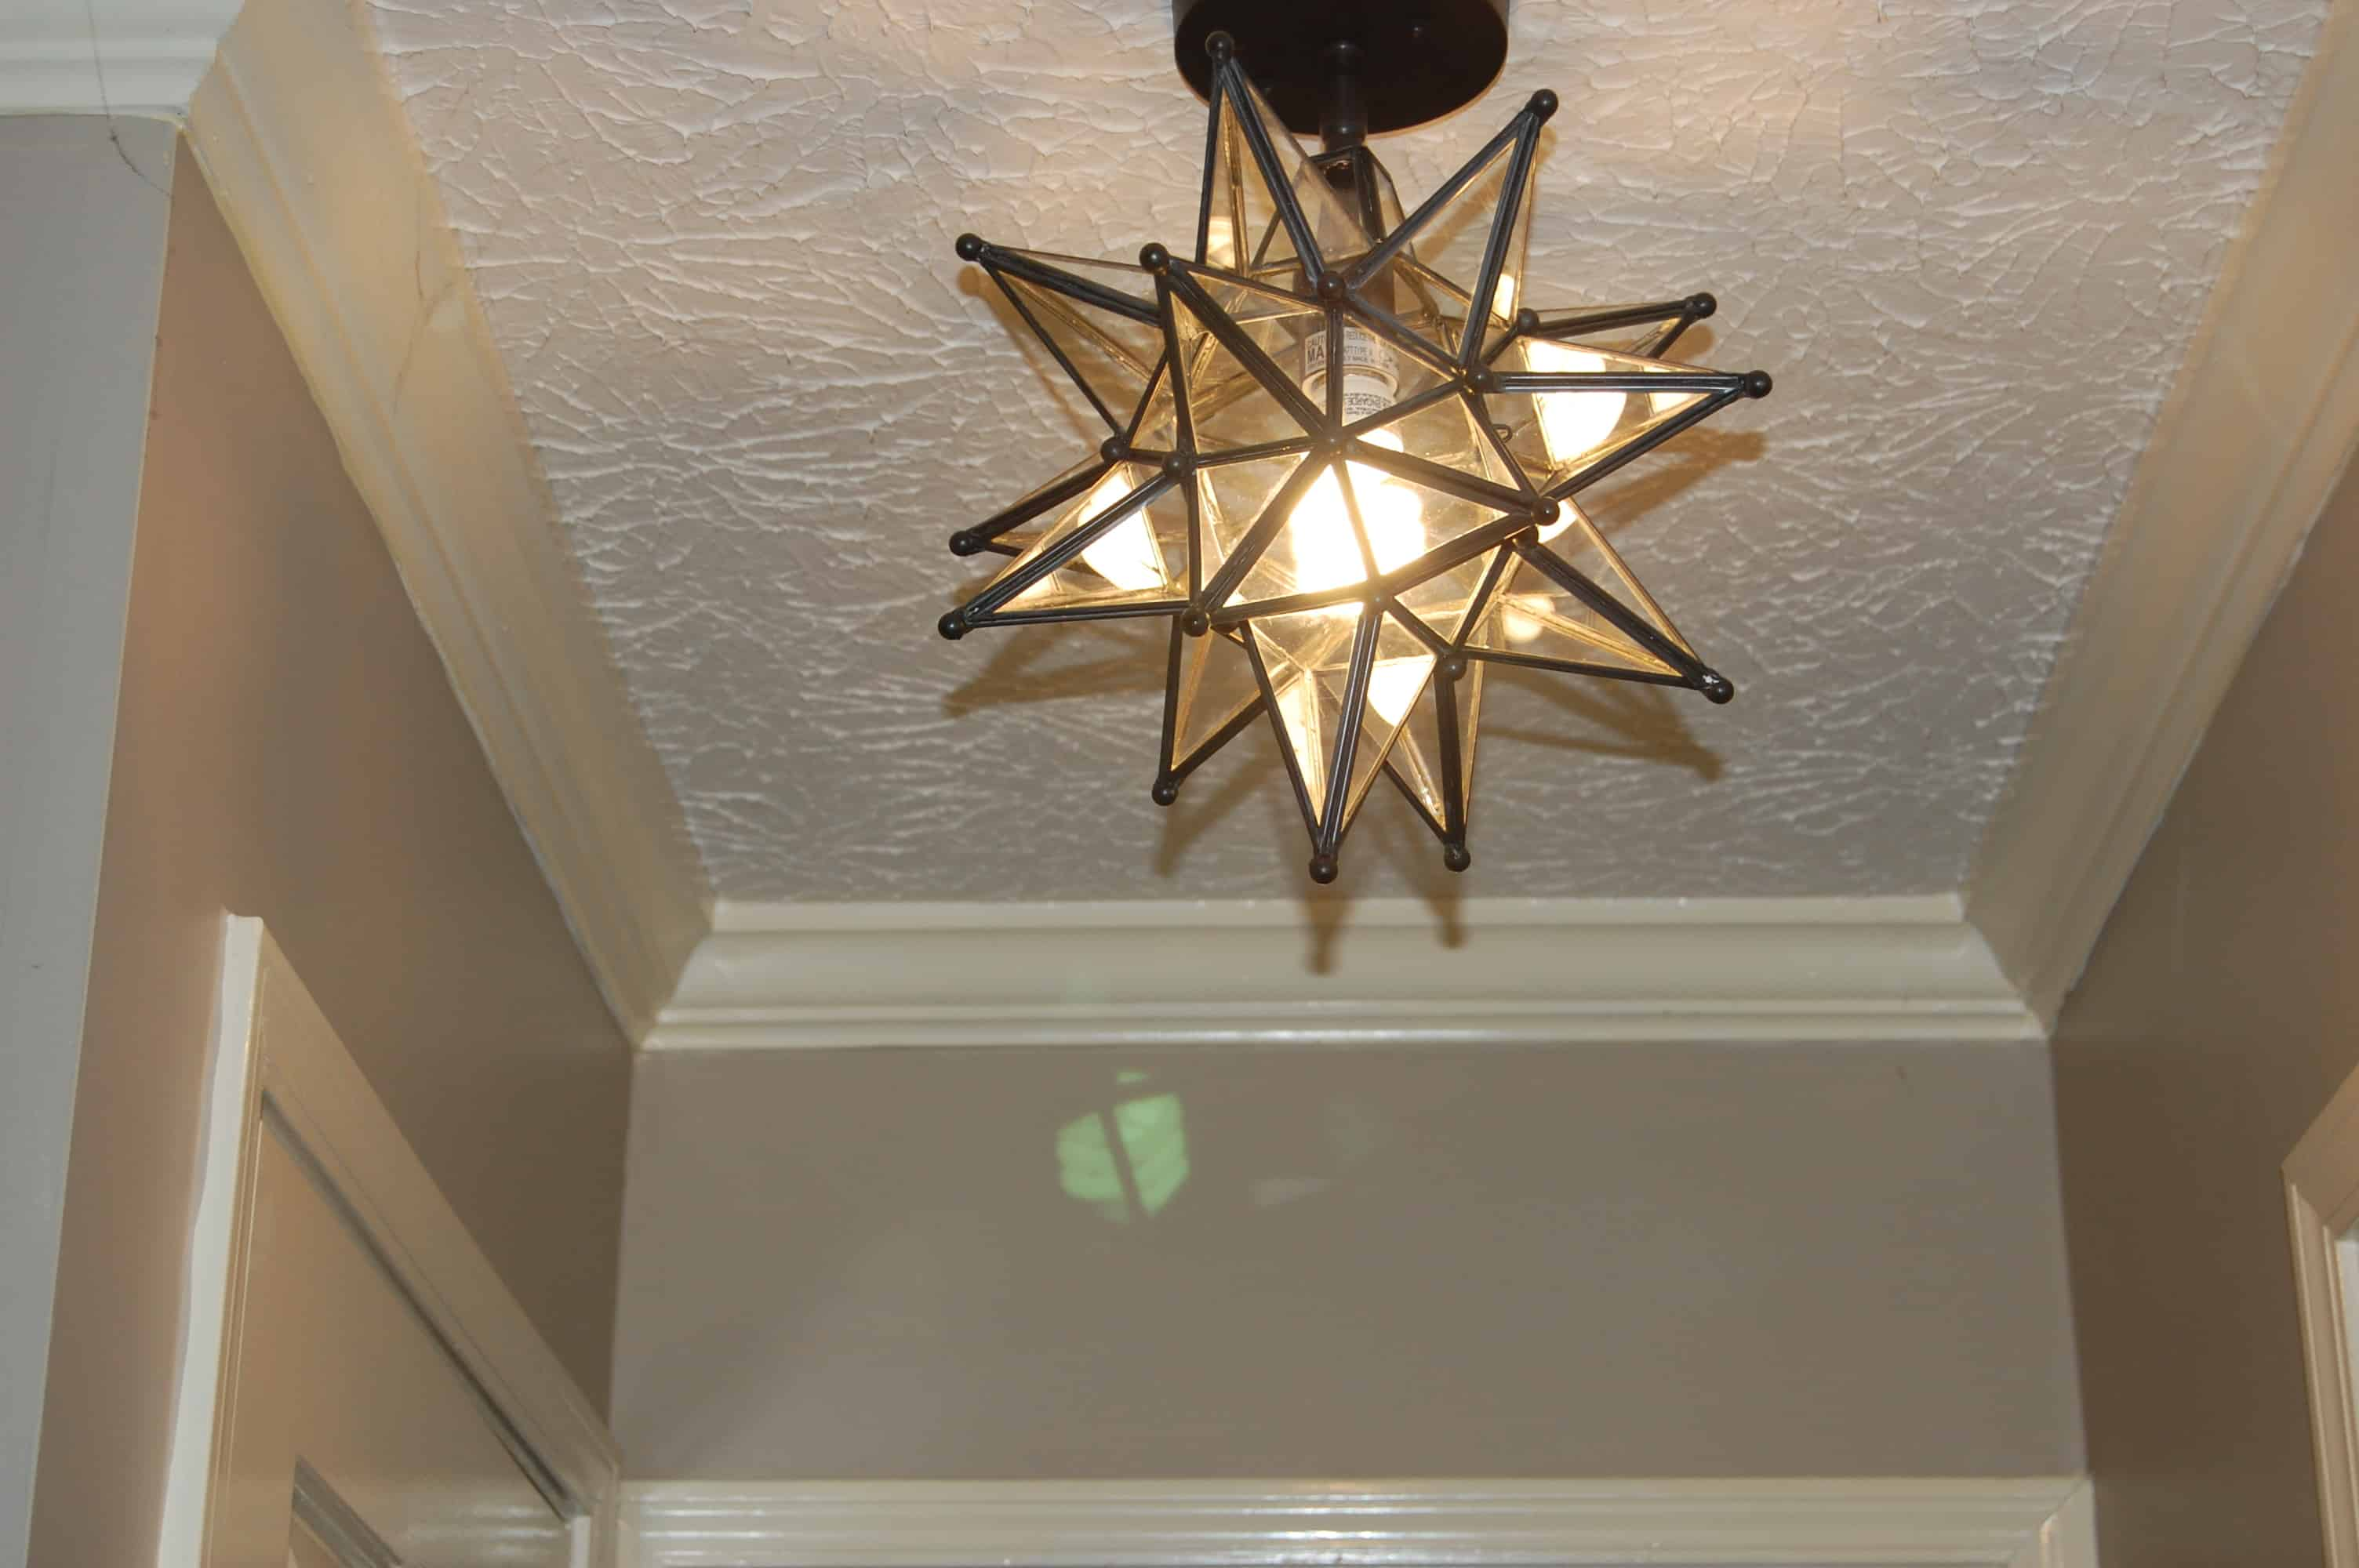 Use more than one light fixture for a bolder effect with grander star power throughout. You can also use different size light fixture for a modern feel on this trend